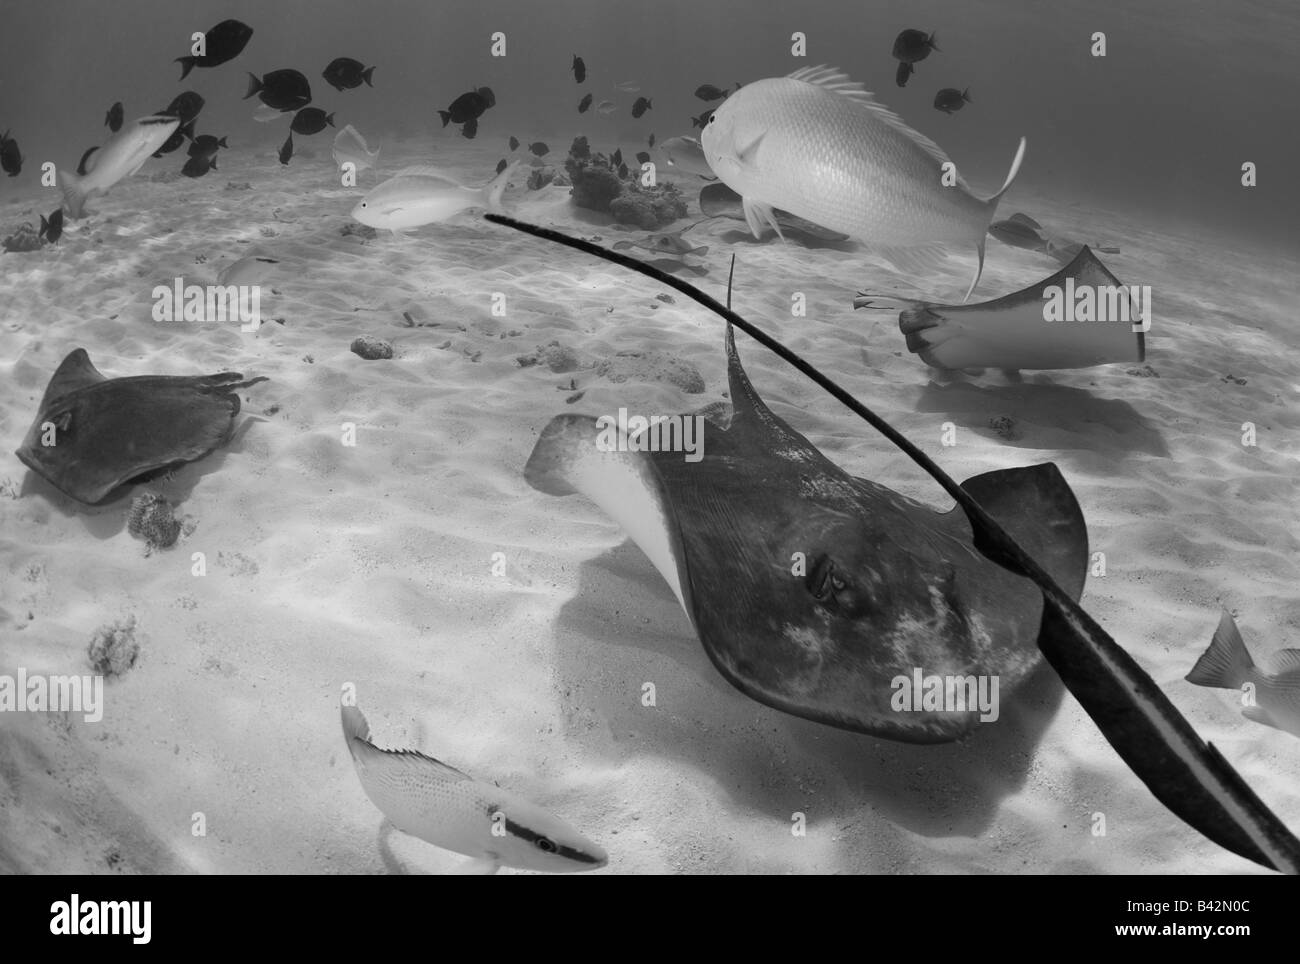 Southern Stingrays at Stingray City Dasyatis americana Grand Cayman Caribbean Sea Cayman Islands - Stock Image